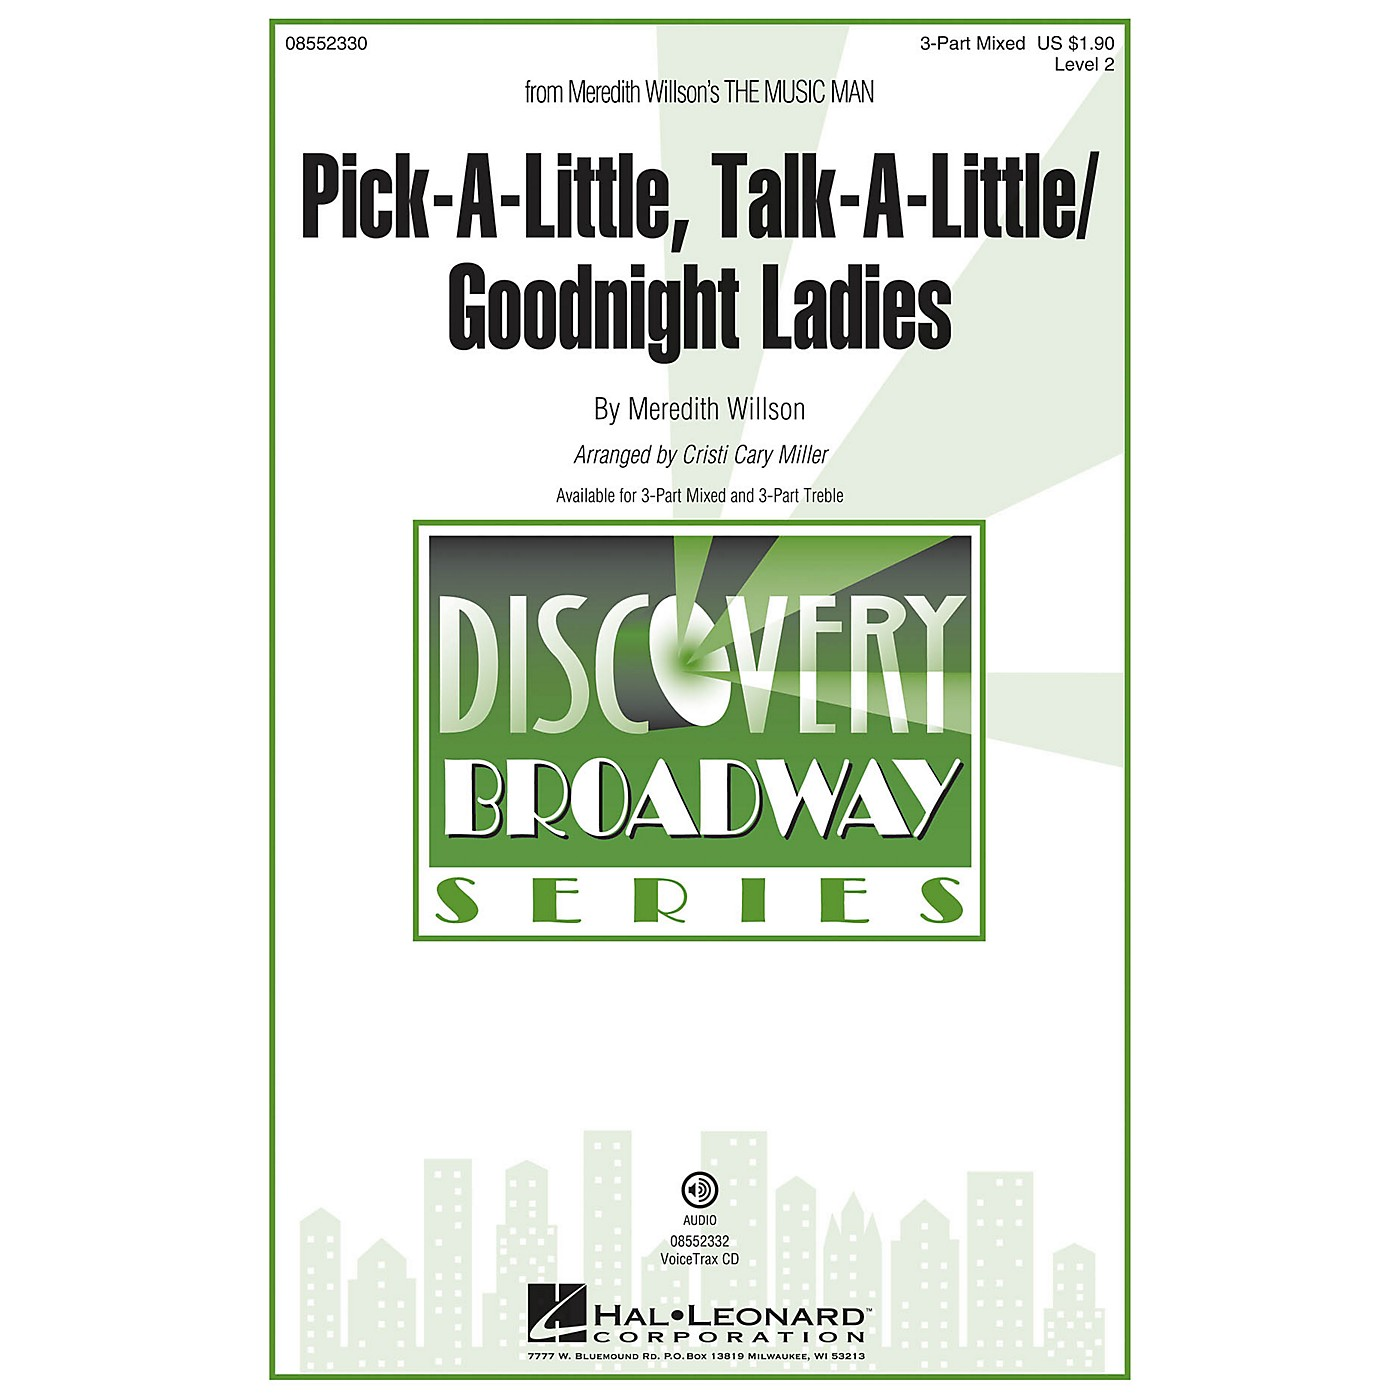 Hal Leonard Pick-a-little, Talk-a-little/Goodnight Ladies 3 Part Treble Arranged by Cristi Cary Miller thumbnail